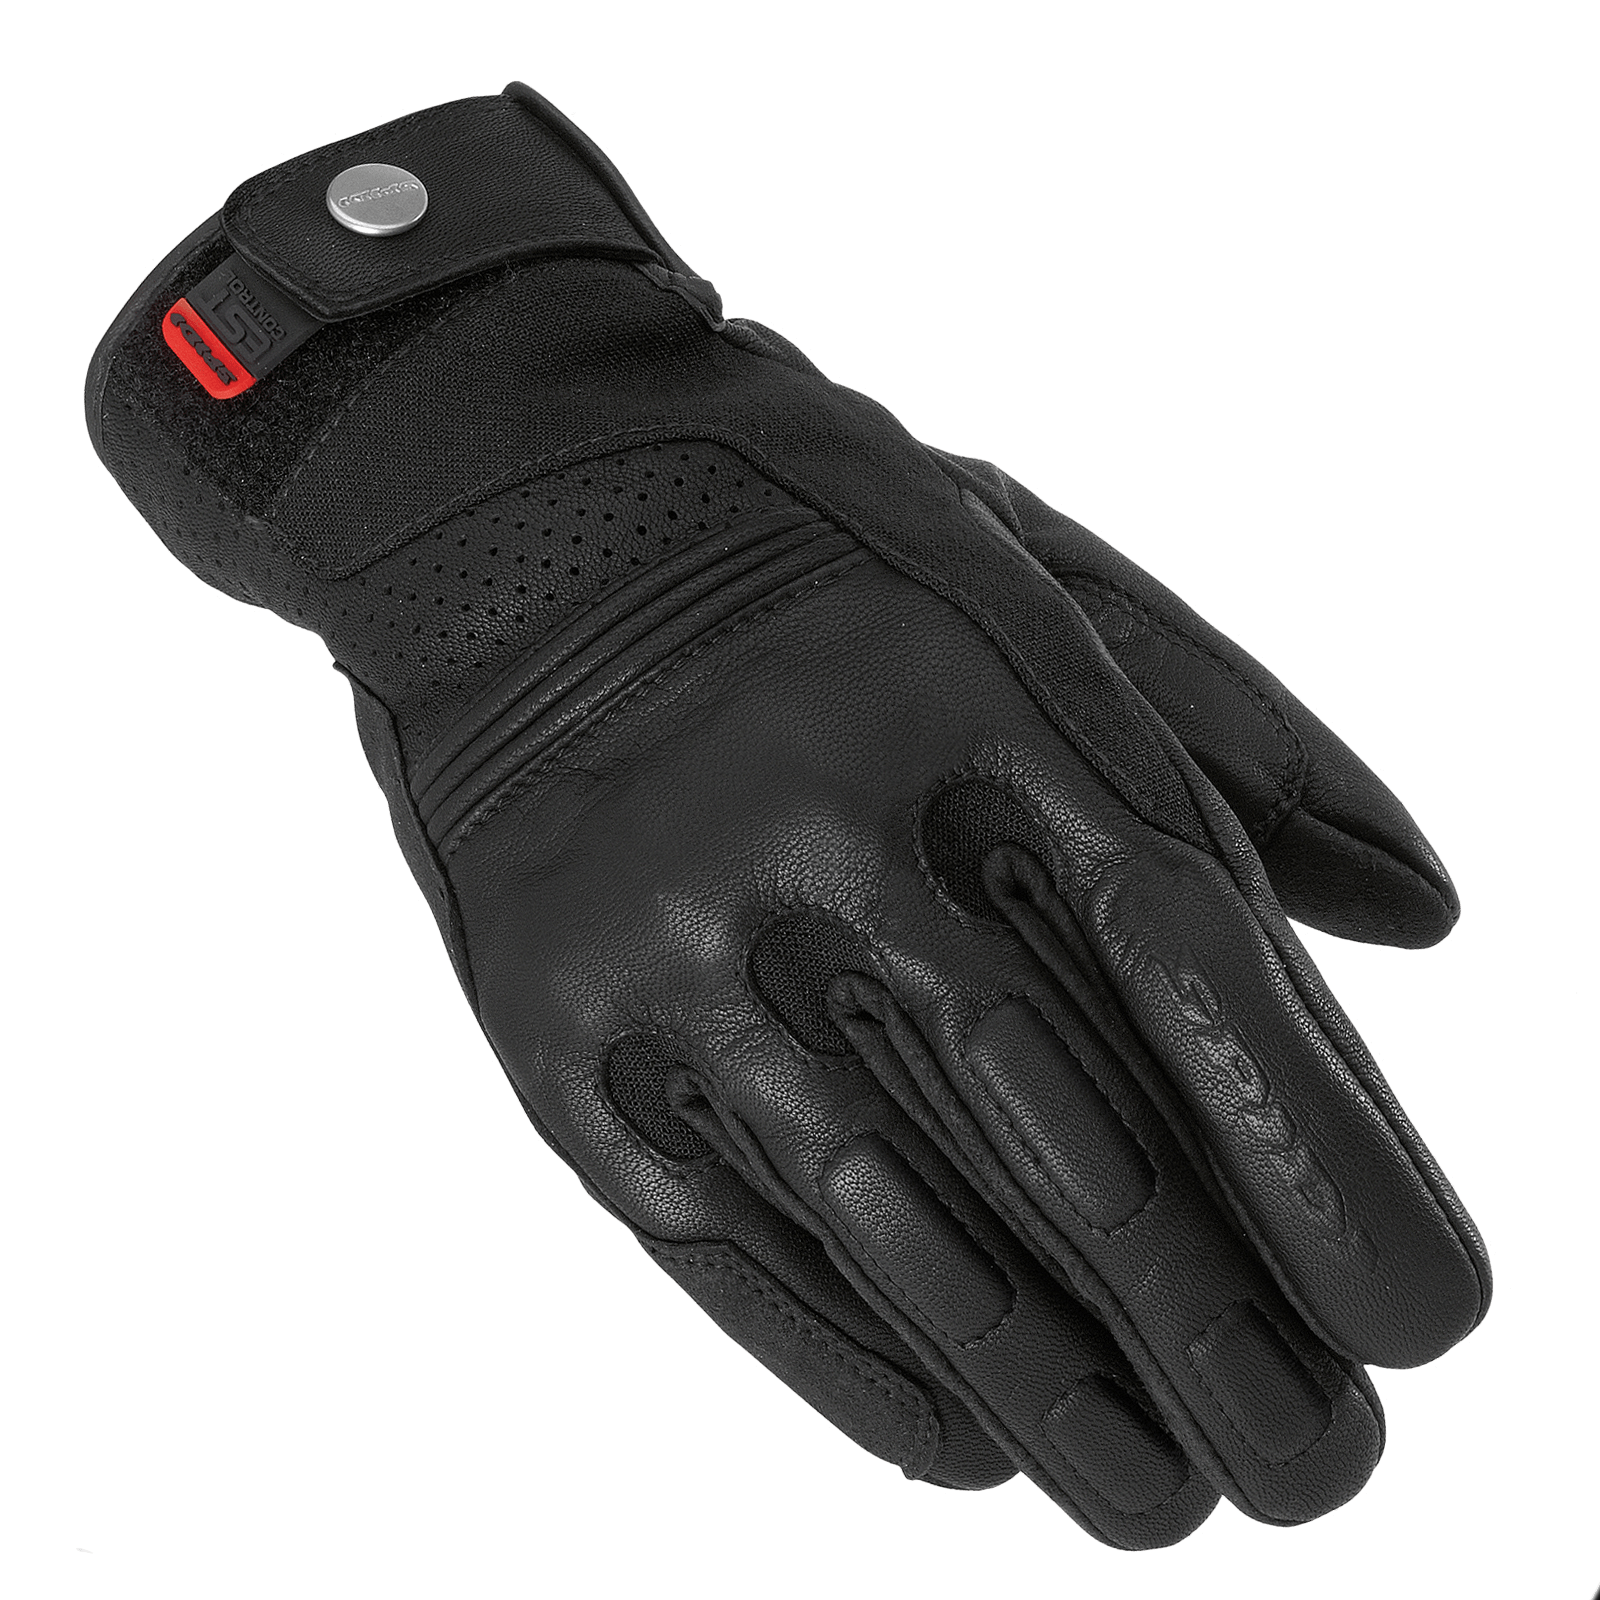 Motorcycle gloves in nepal - Prevnext